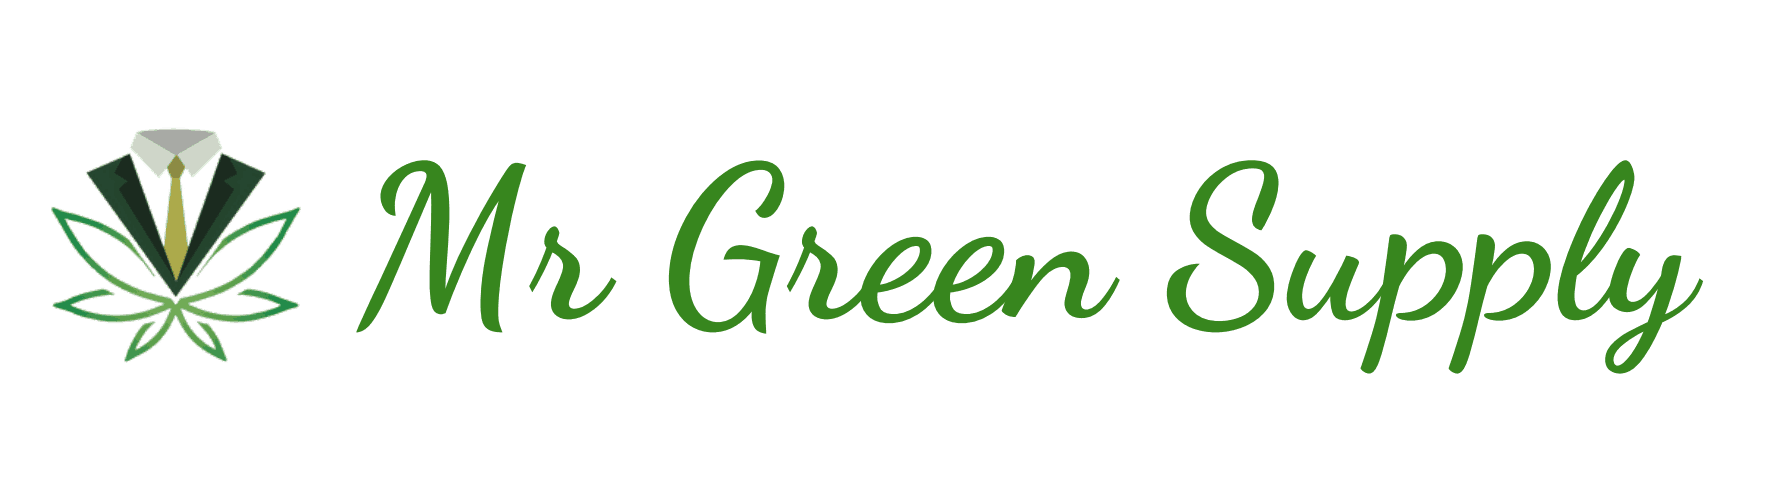 Mr Green Supply Coupons & Promo codes